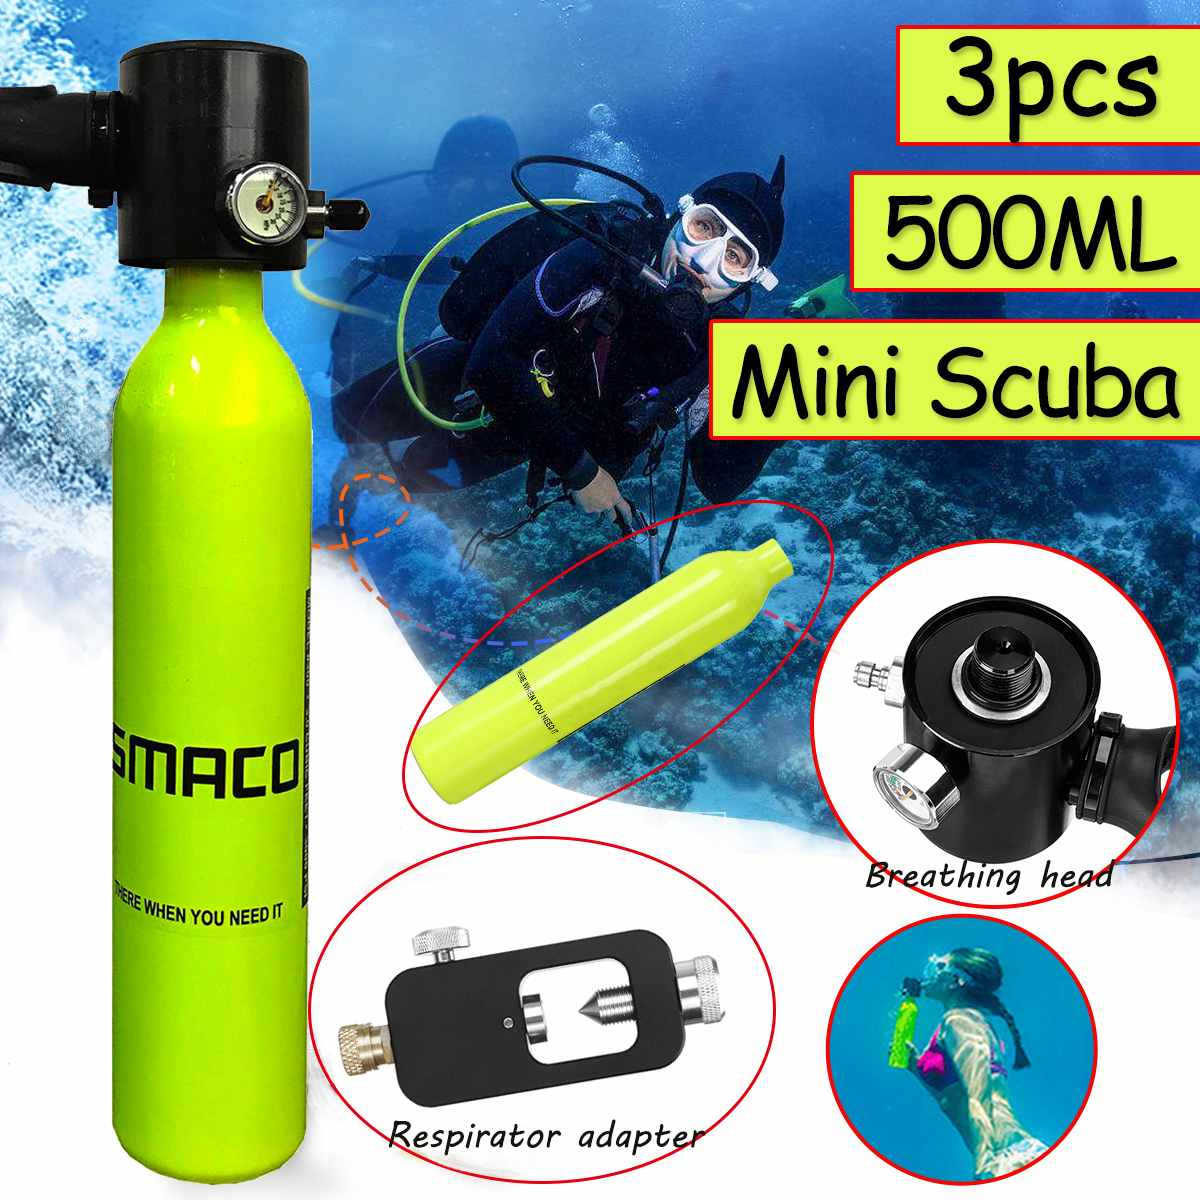 For 7-10min Mini Scuba 0.5l Potable Diving Equipment Mini Scuba Diving Cylinder Diving Oxygen Tank